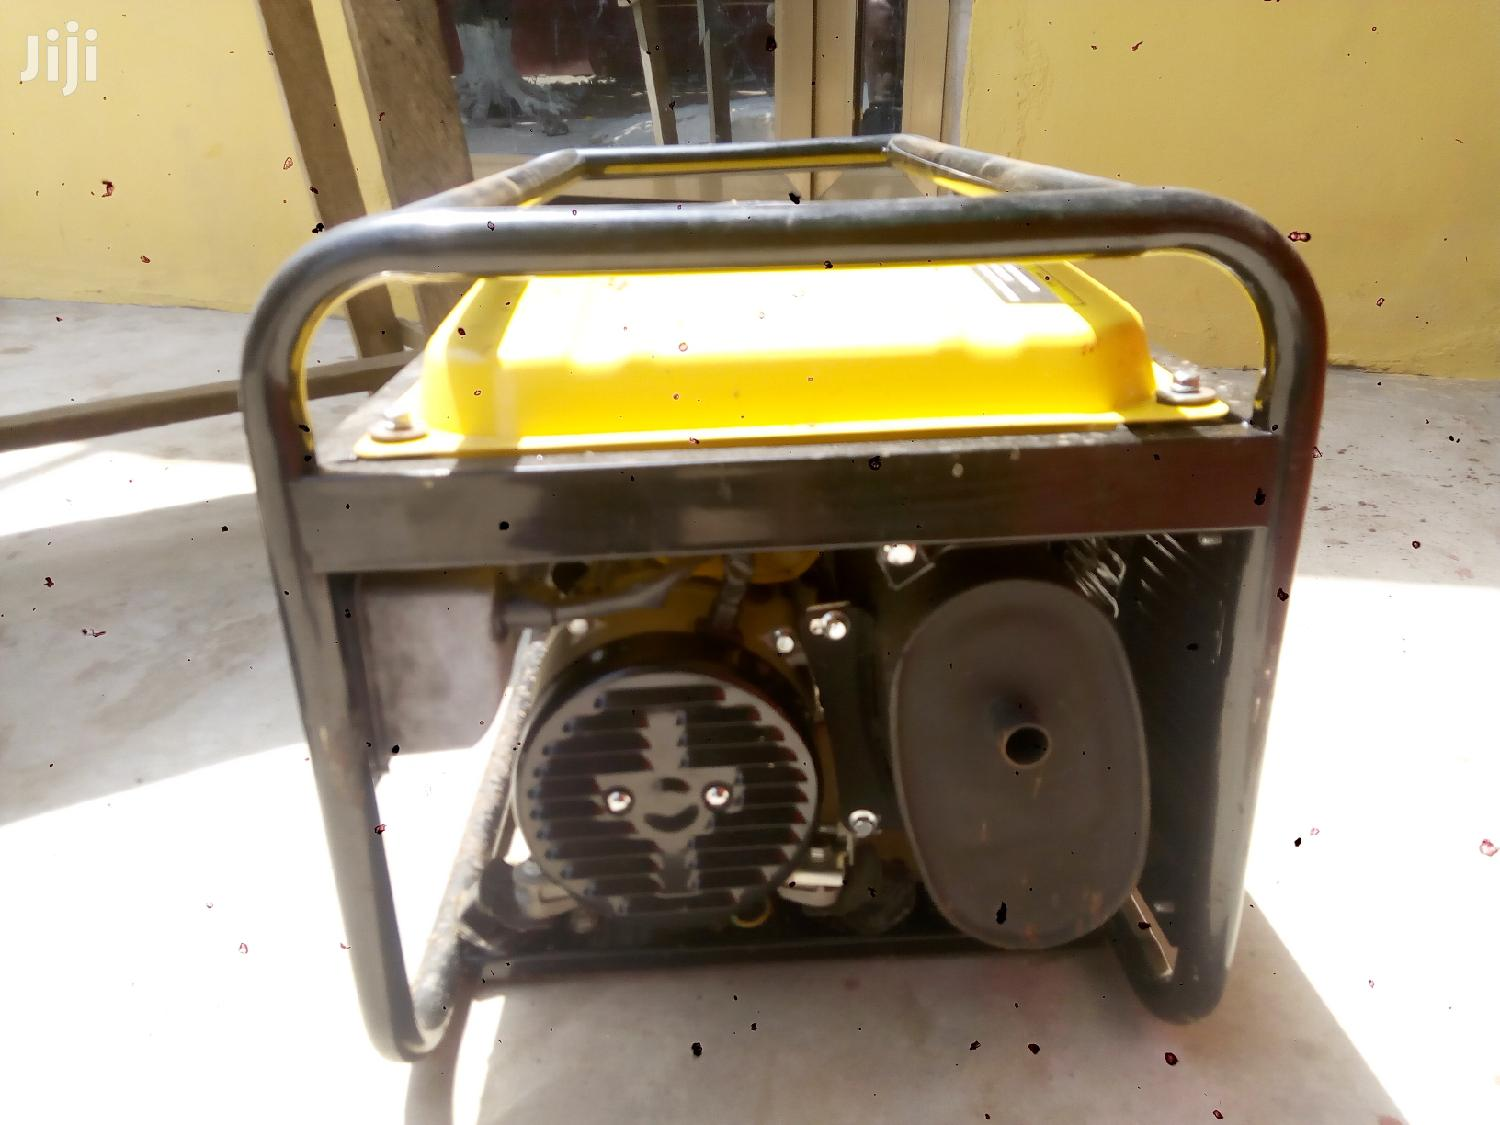 Honda Generator 5.5HP | Electrical Equipment for sale in Accra Metropolitan, Greater Accra, Ghana